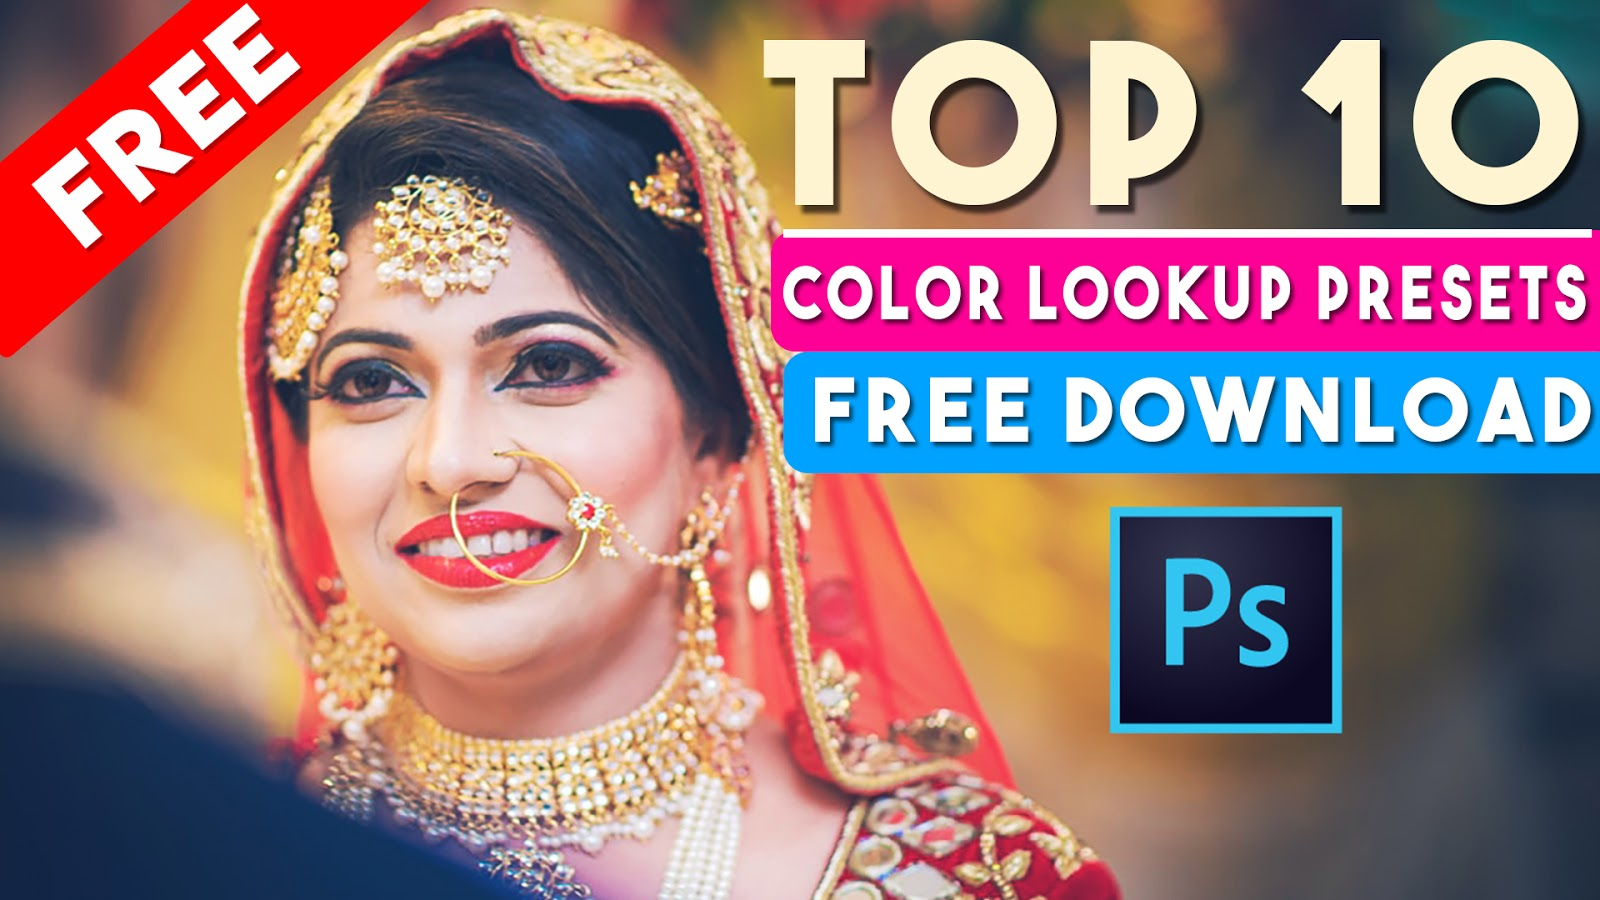 download top-10 color lookup presets